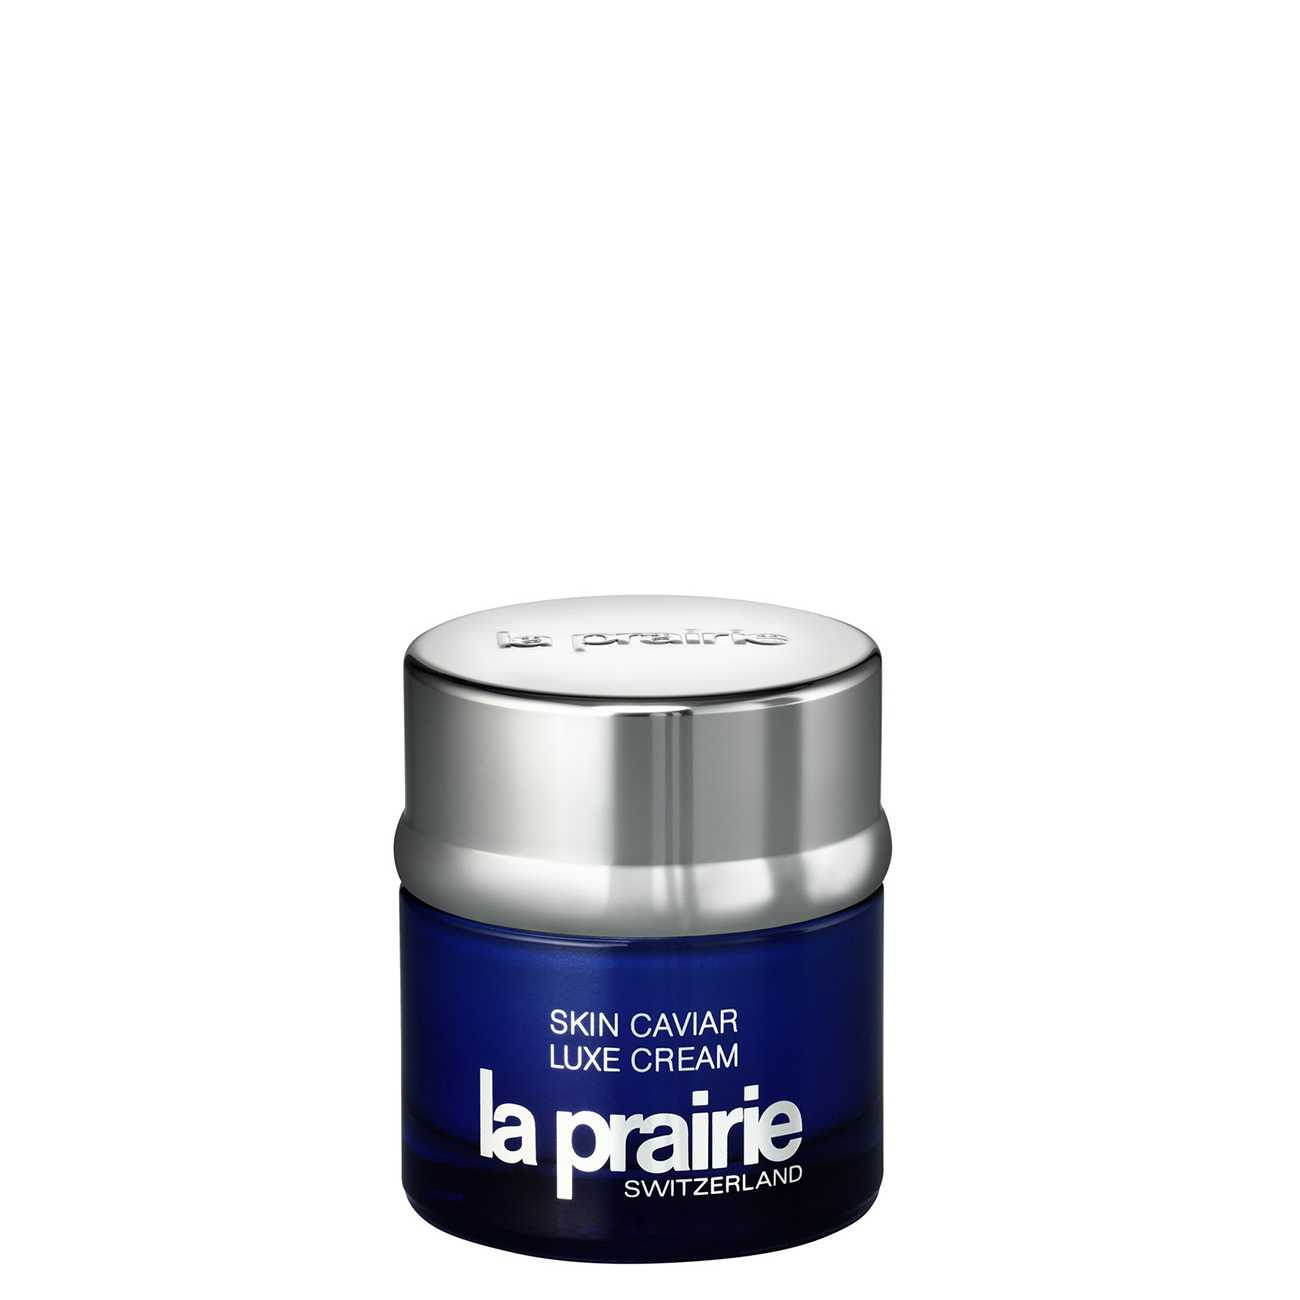 SKIN CAVIAR LUXE CREAM 50 ML